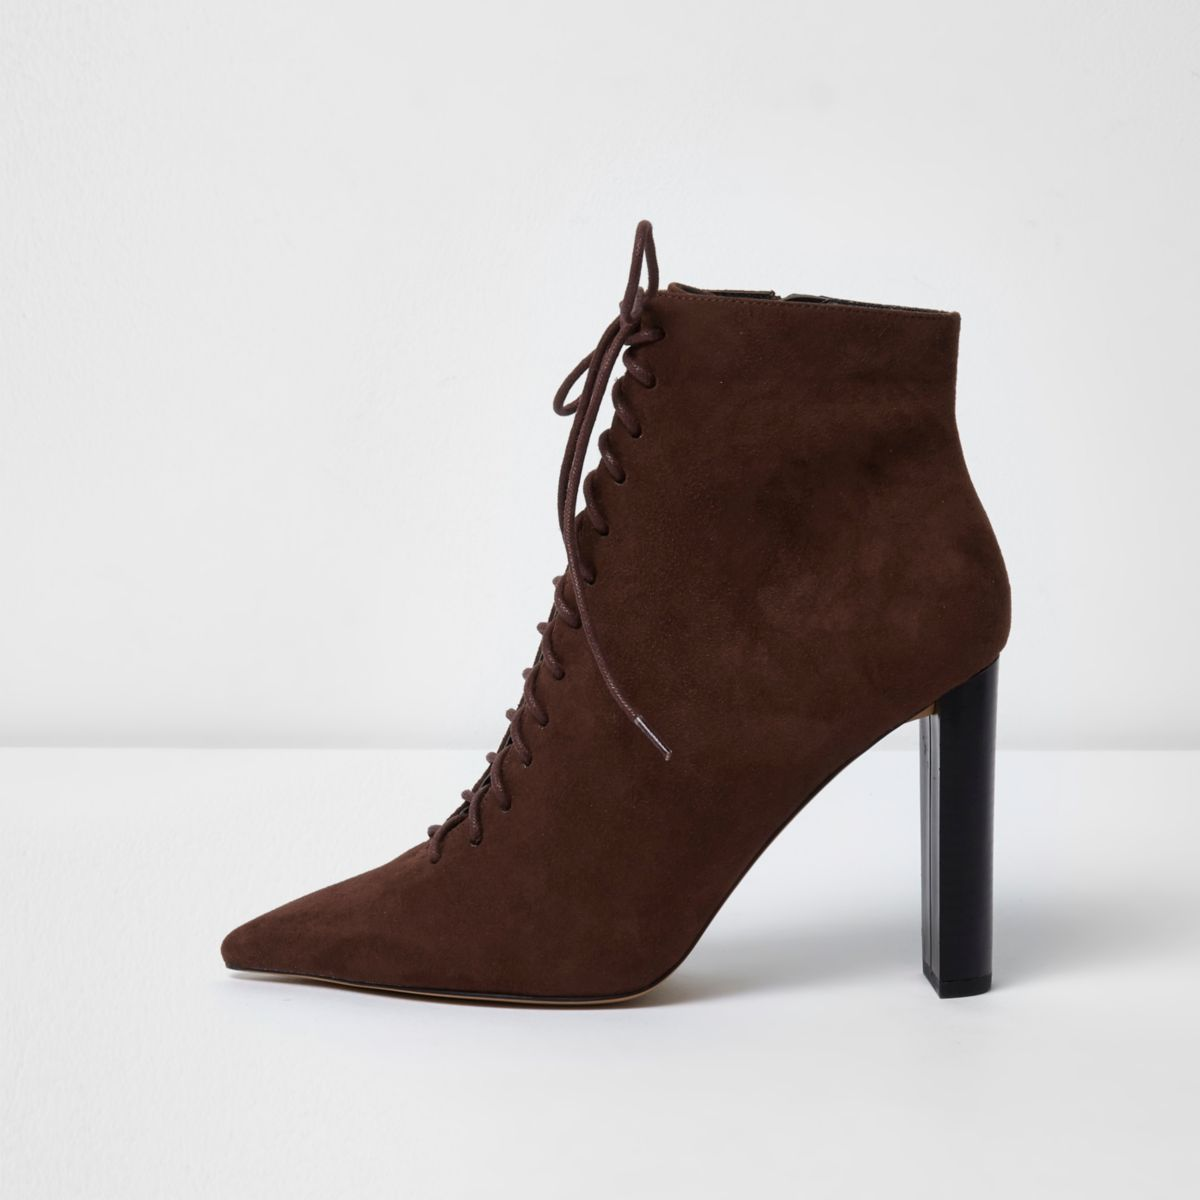 Brown pointed toe lace-up ankle boots